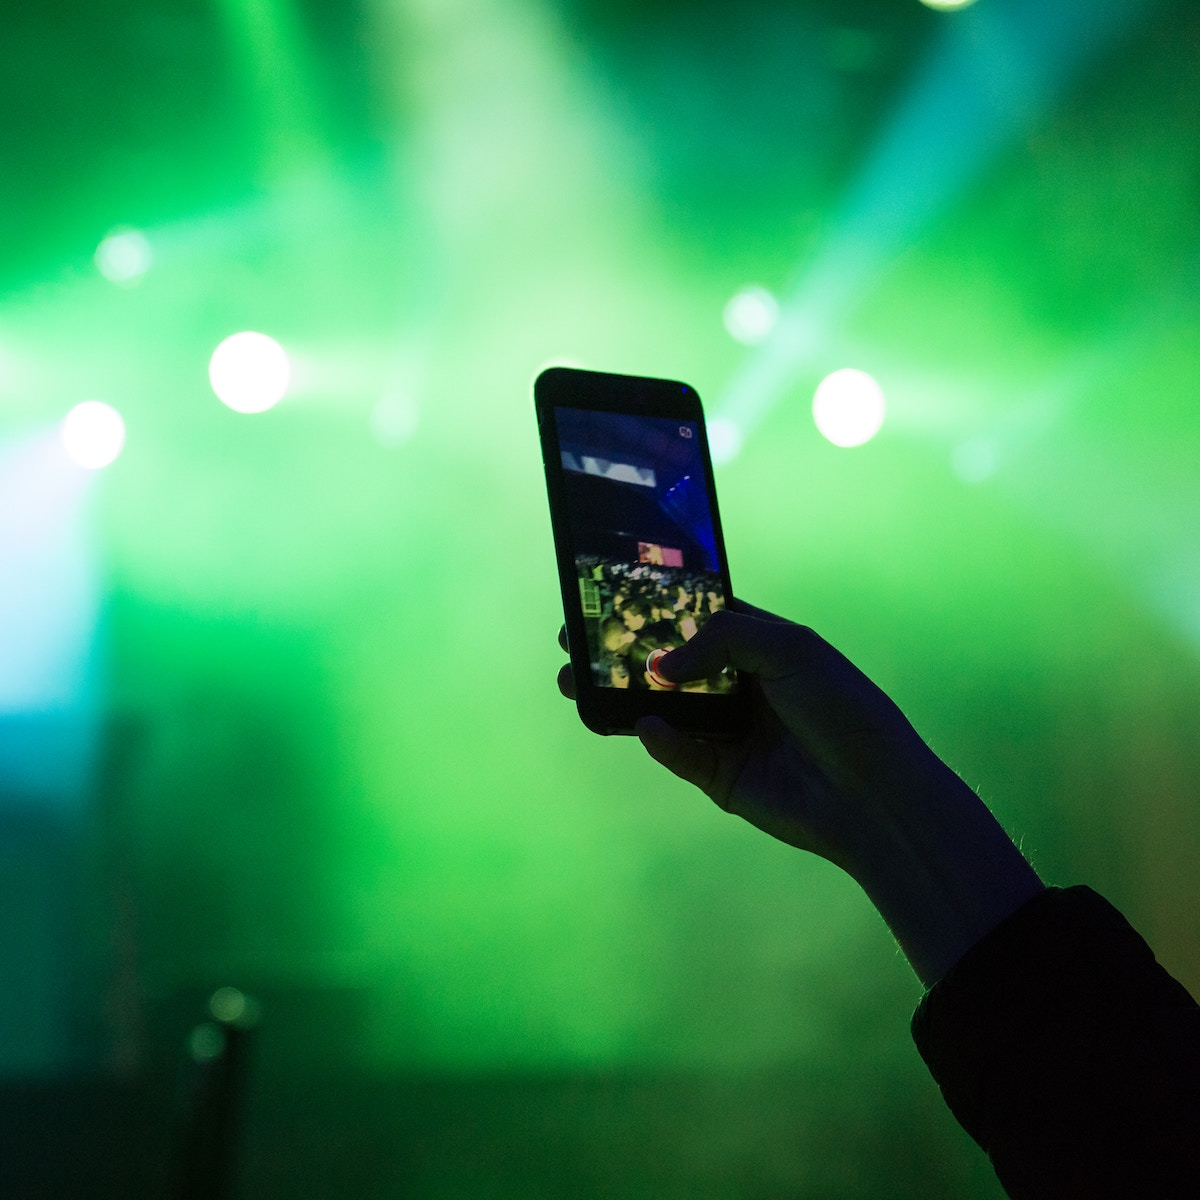 A silhouette of a hand filming a concert using an iPhone